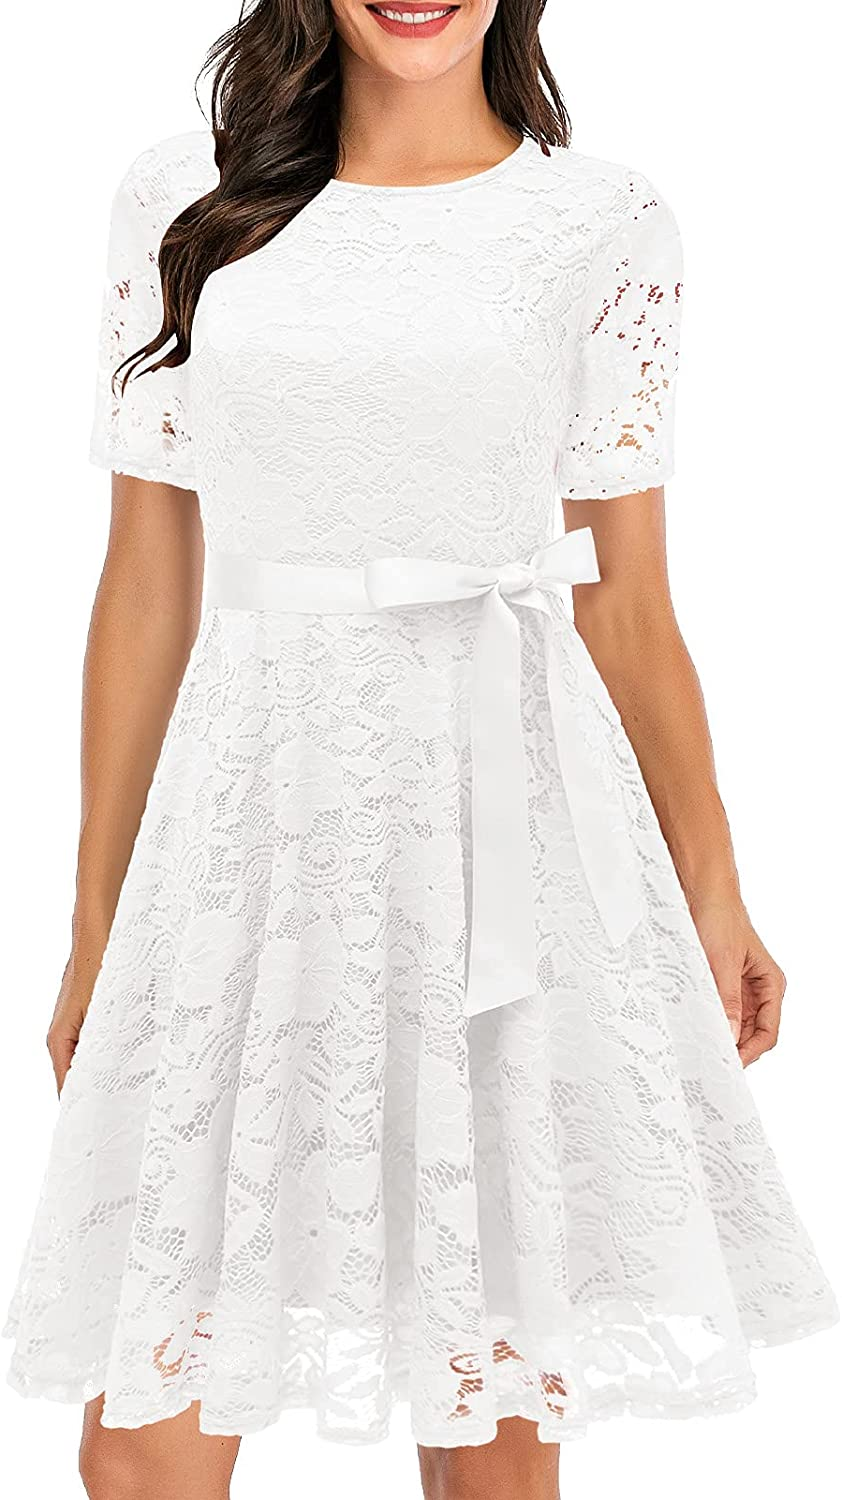 Women Lace Dress Prom Bridesmaid Dress Swing A-Line Cocktail Party Dresses